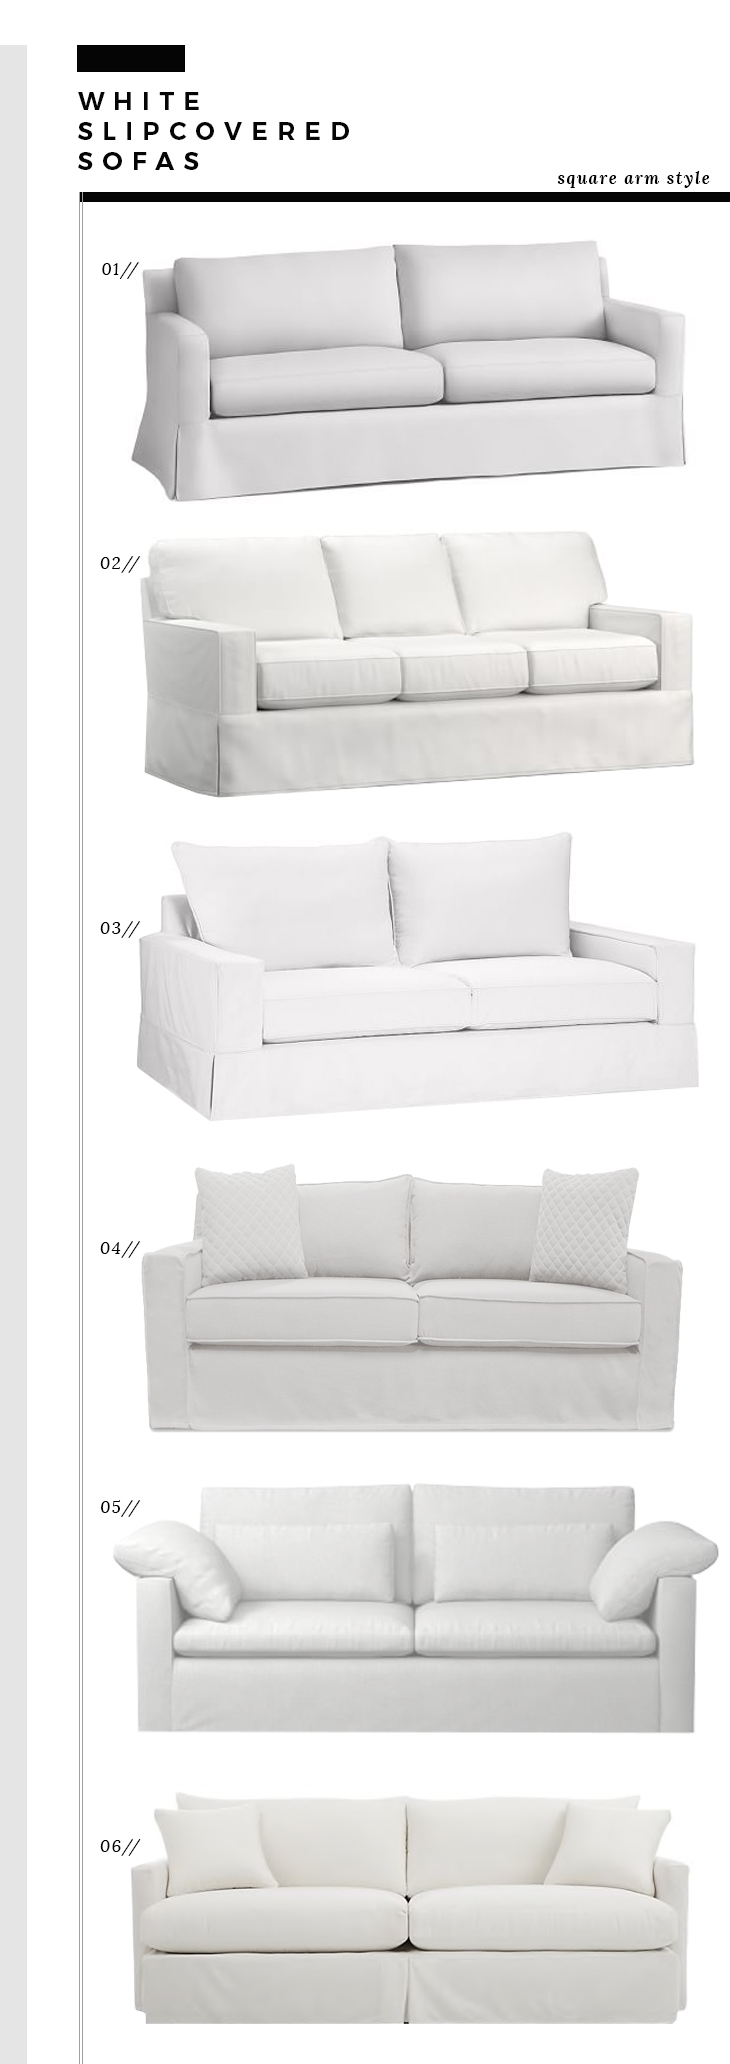 Square Arm Slipcover Sofas